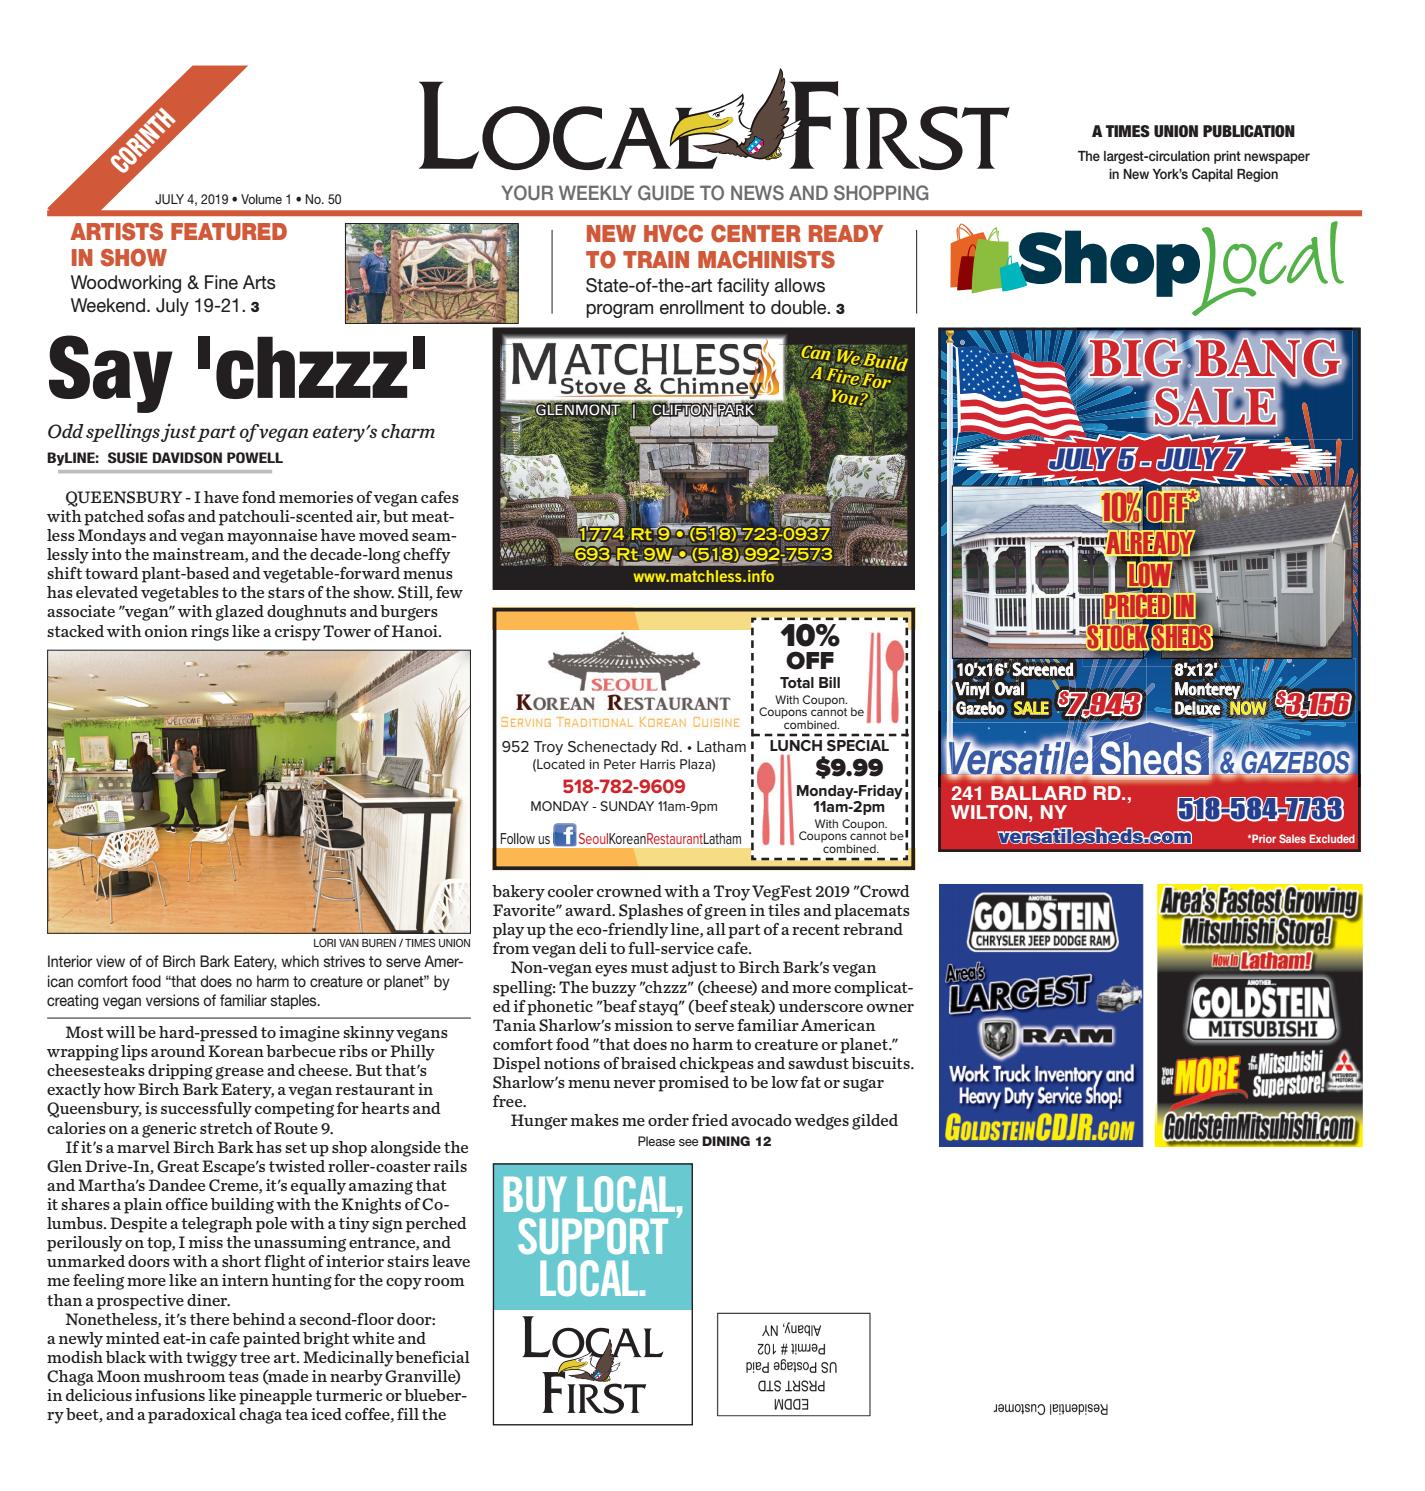 Local First Corinth 070419 By Capital Region Weekly Newspapers Issuu